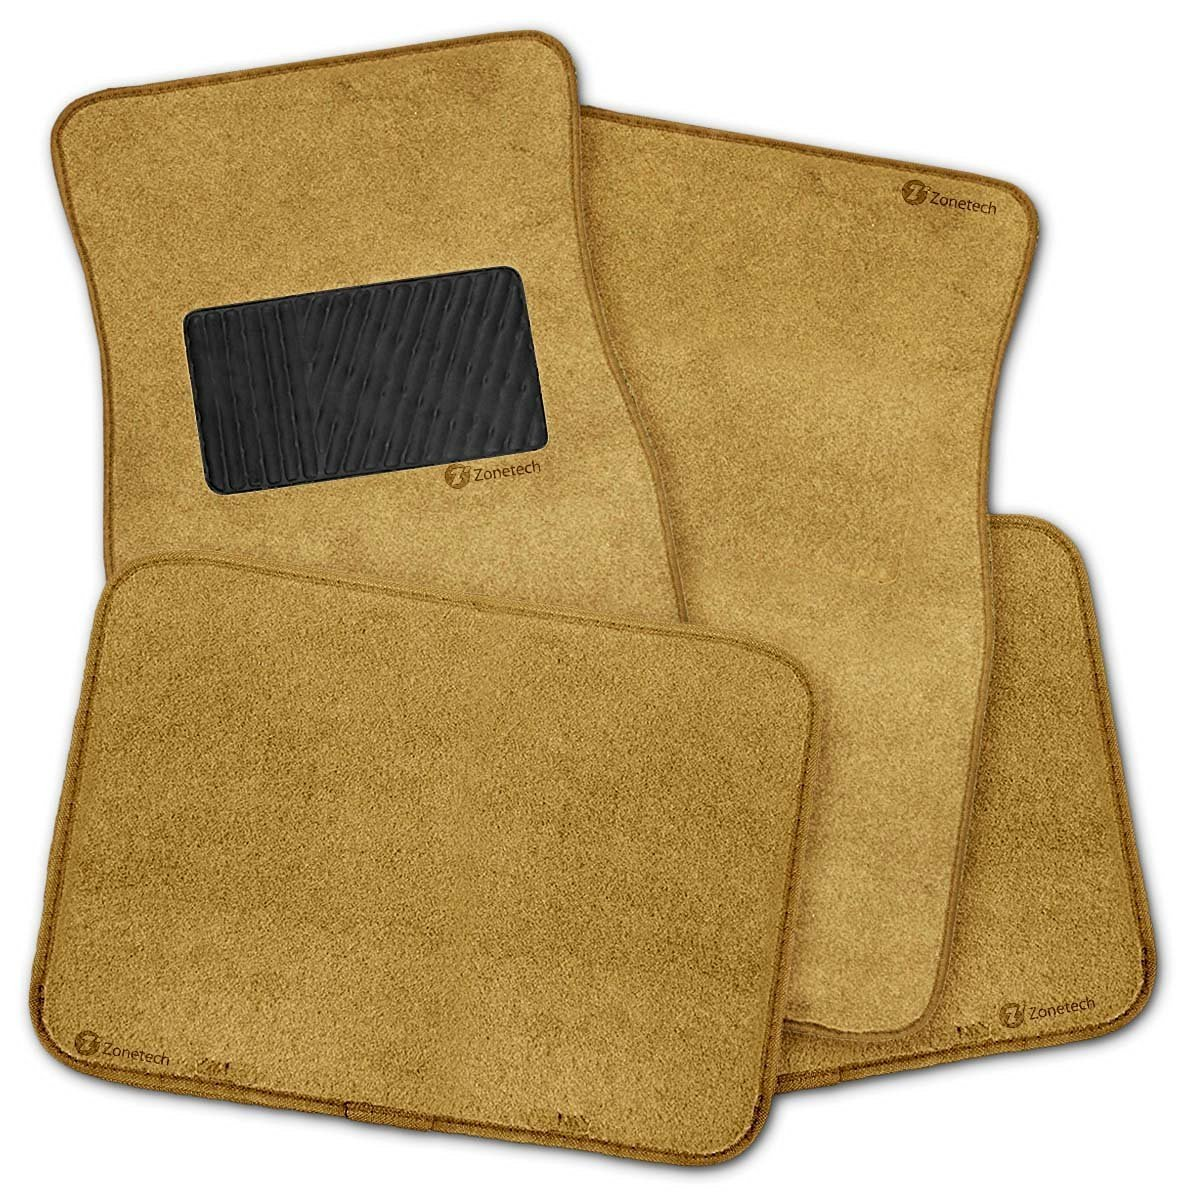 Zone Tech All Weather Heavy Duty Vehicle Floor Mats - 4- Piece Beige Full Carpet Vehicle Floor Mats Plus Vinyl Heel Pad for Additional Protection